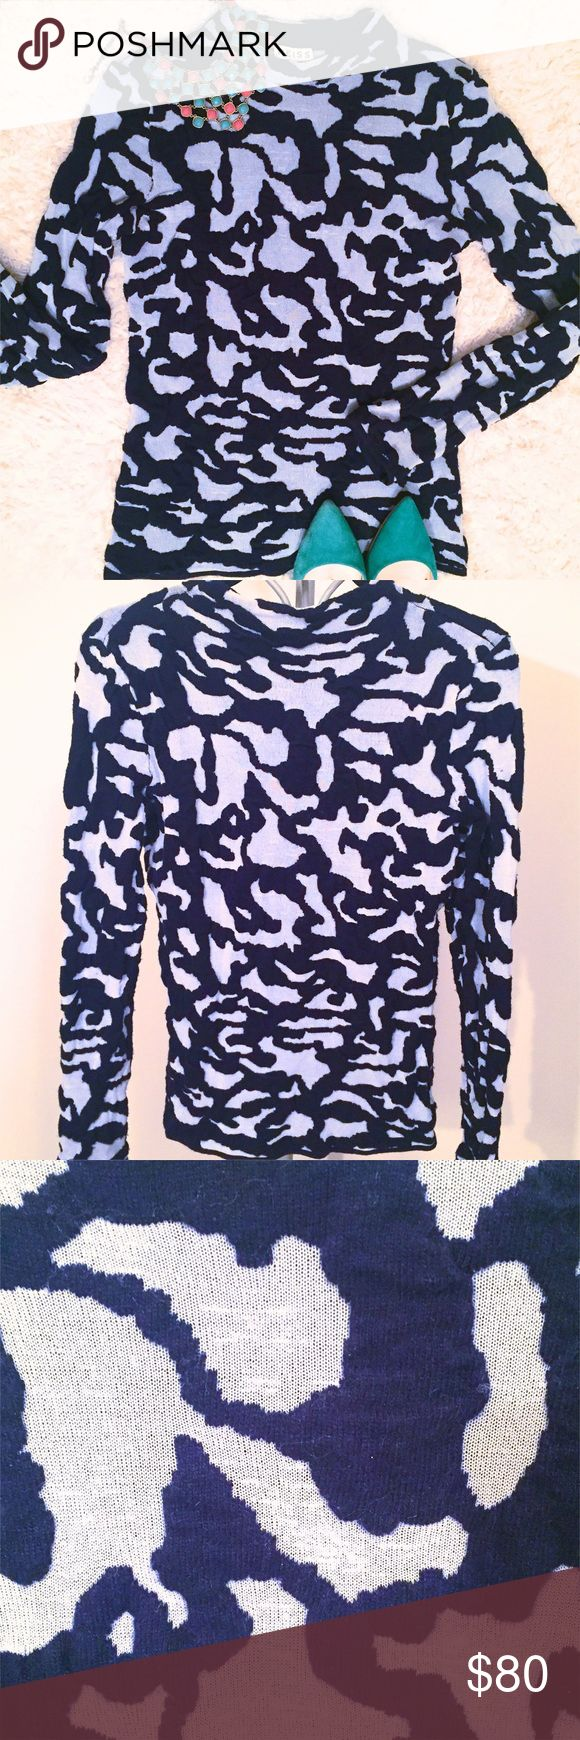 Reiss high neck sweater Reiss high neck fitted sweater. Alpaca wool blend. Sits below the waist. Looks great with jeans or leggings and a leather jacket. Barely worn, like new. Reiss Sweaters Cowl & Turtlenecks